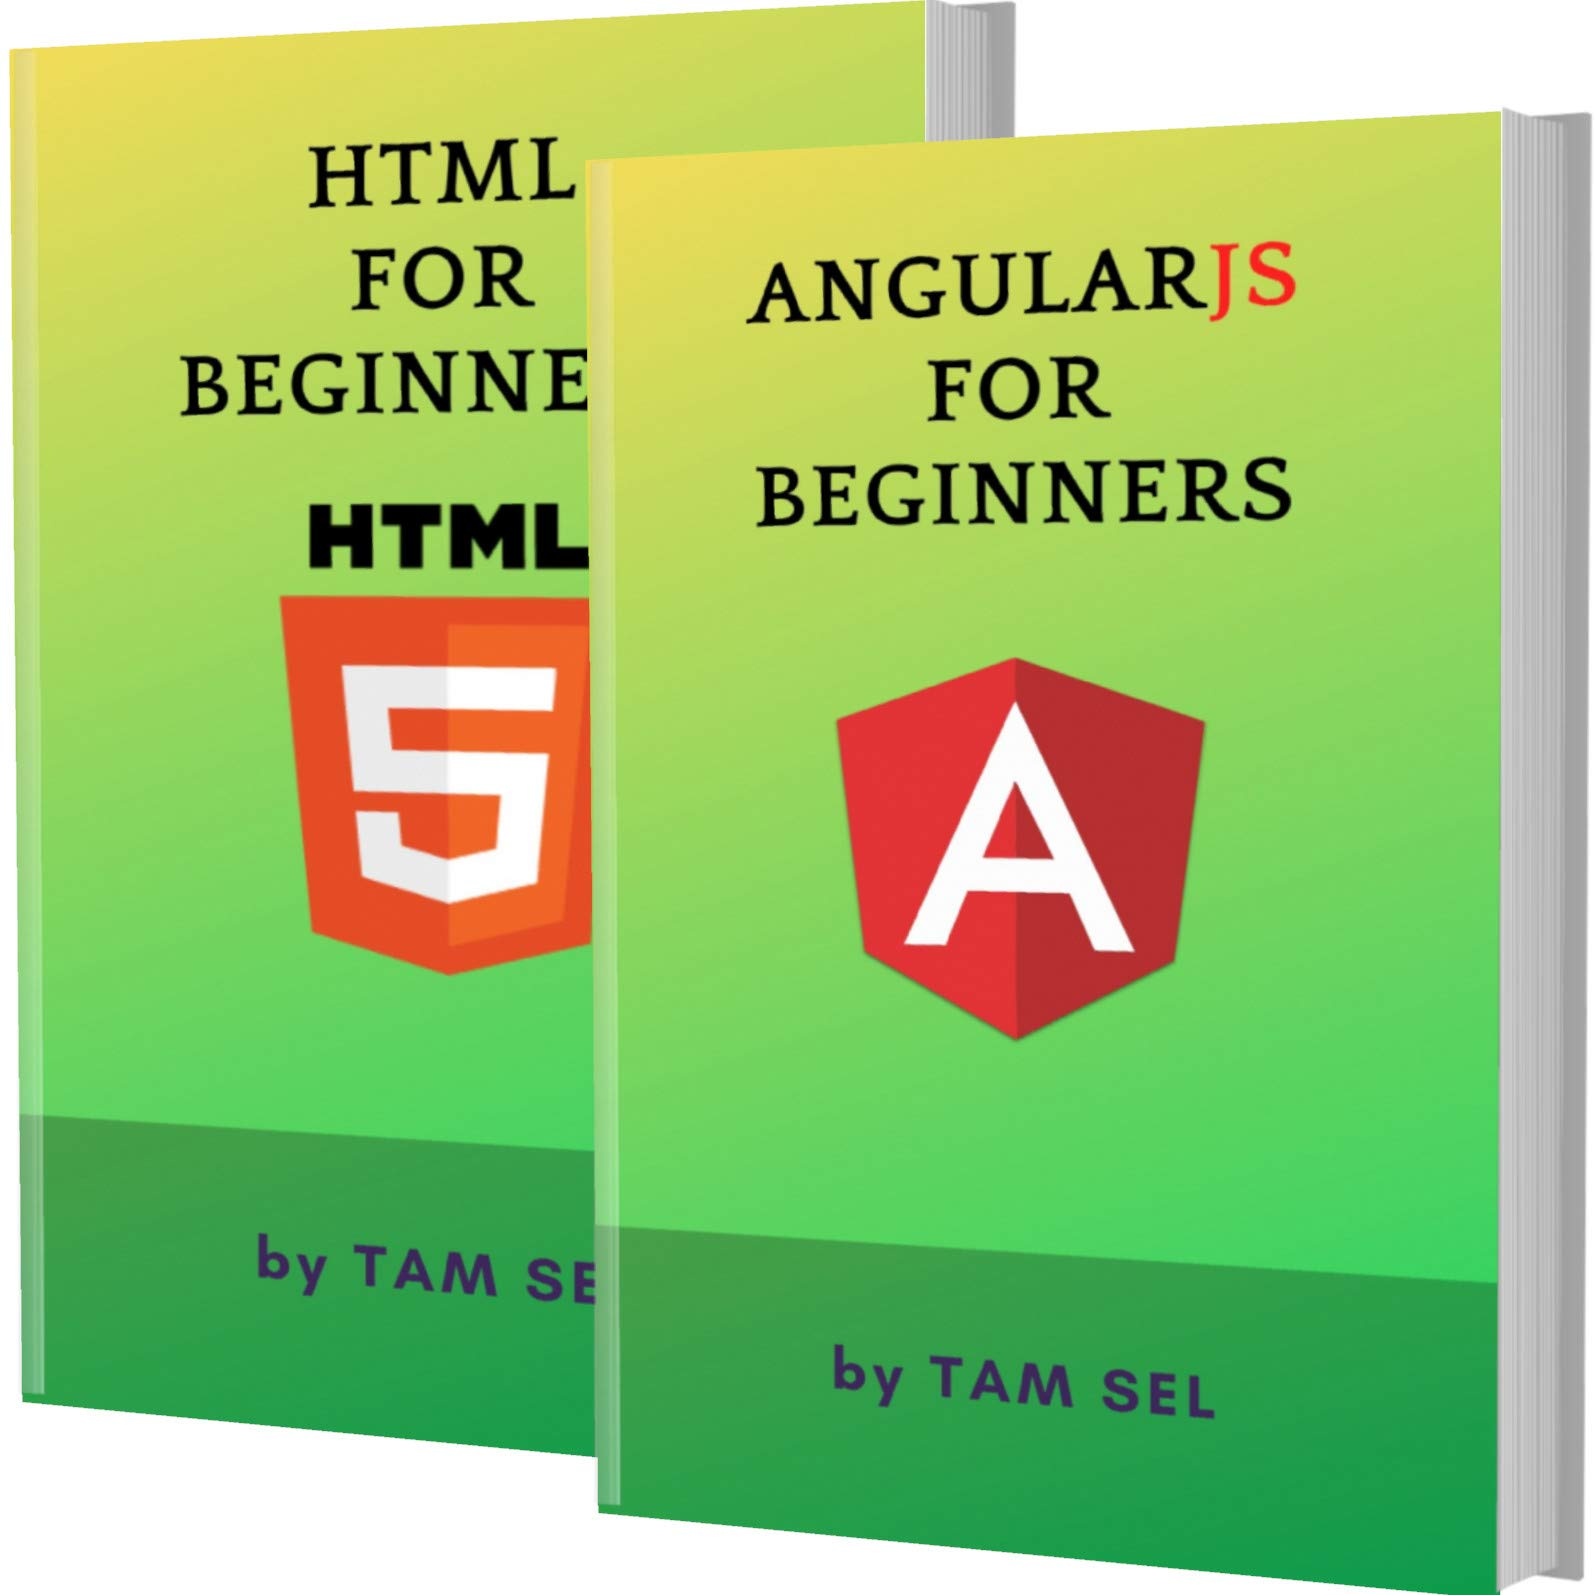 AngularJS AND HTML FOR BEGINNERS: 2 BOOKS IN 1 - Learn Coding Fast! AngularJS AND HTML Crash Course, A QuickStart Guide, Tutorial Book by Program Examples, In Easy Steps!